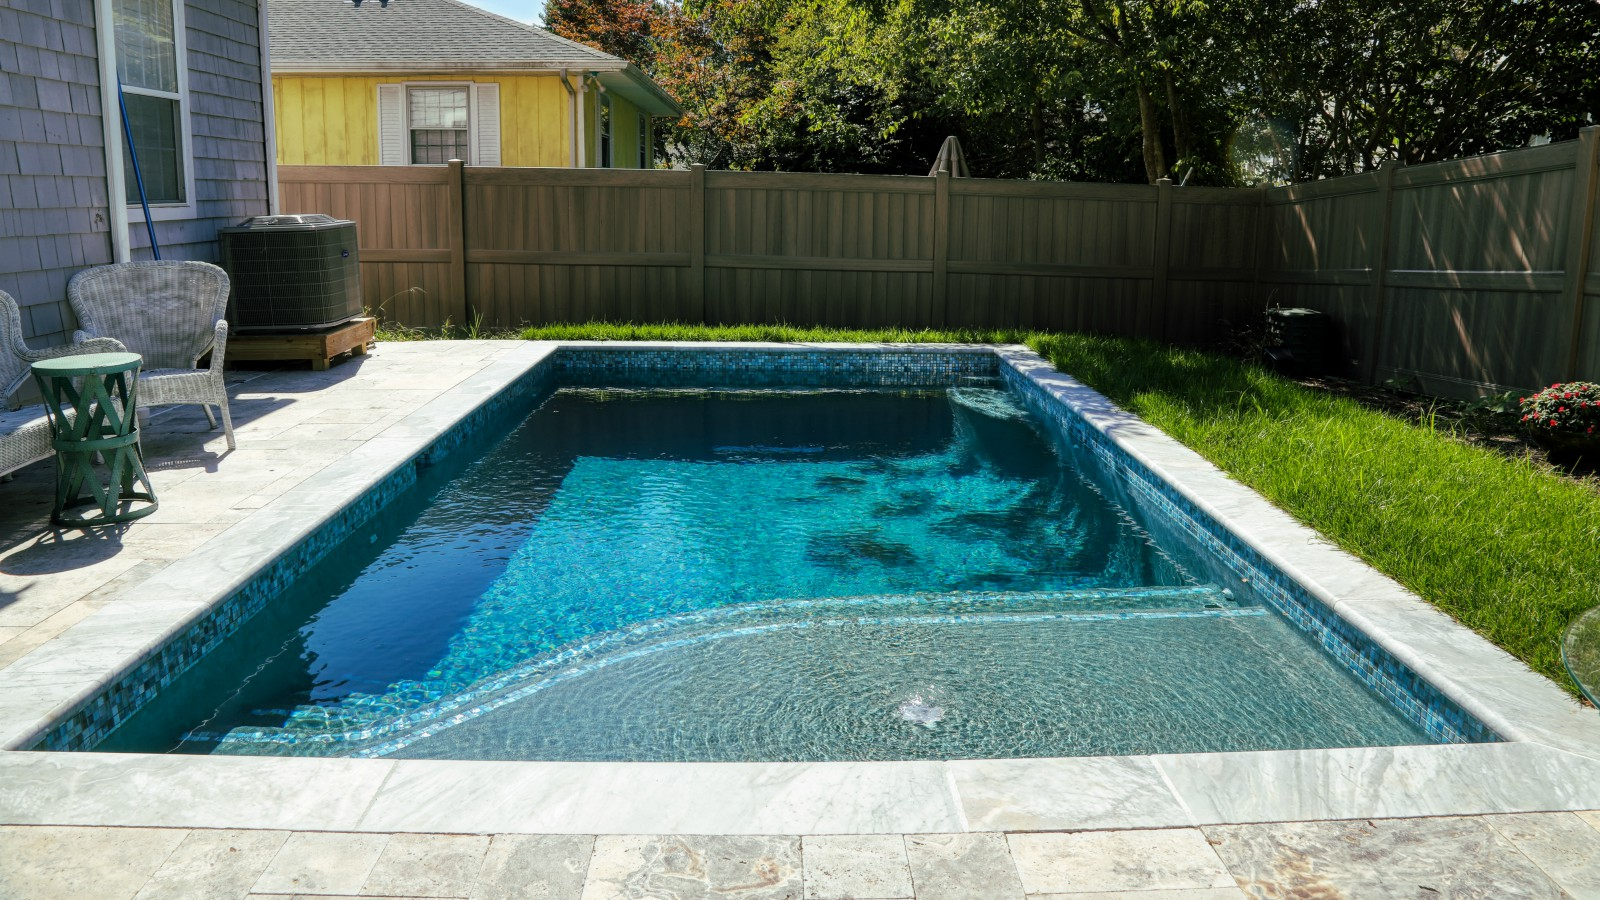 499_scr-straight-to-yellow-home Custom Swimming Pool Design, Renovation & Inspection - Carter Aquatics